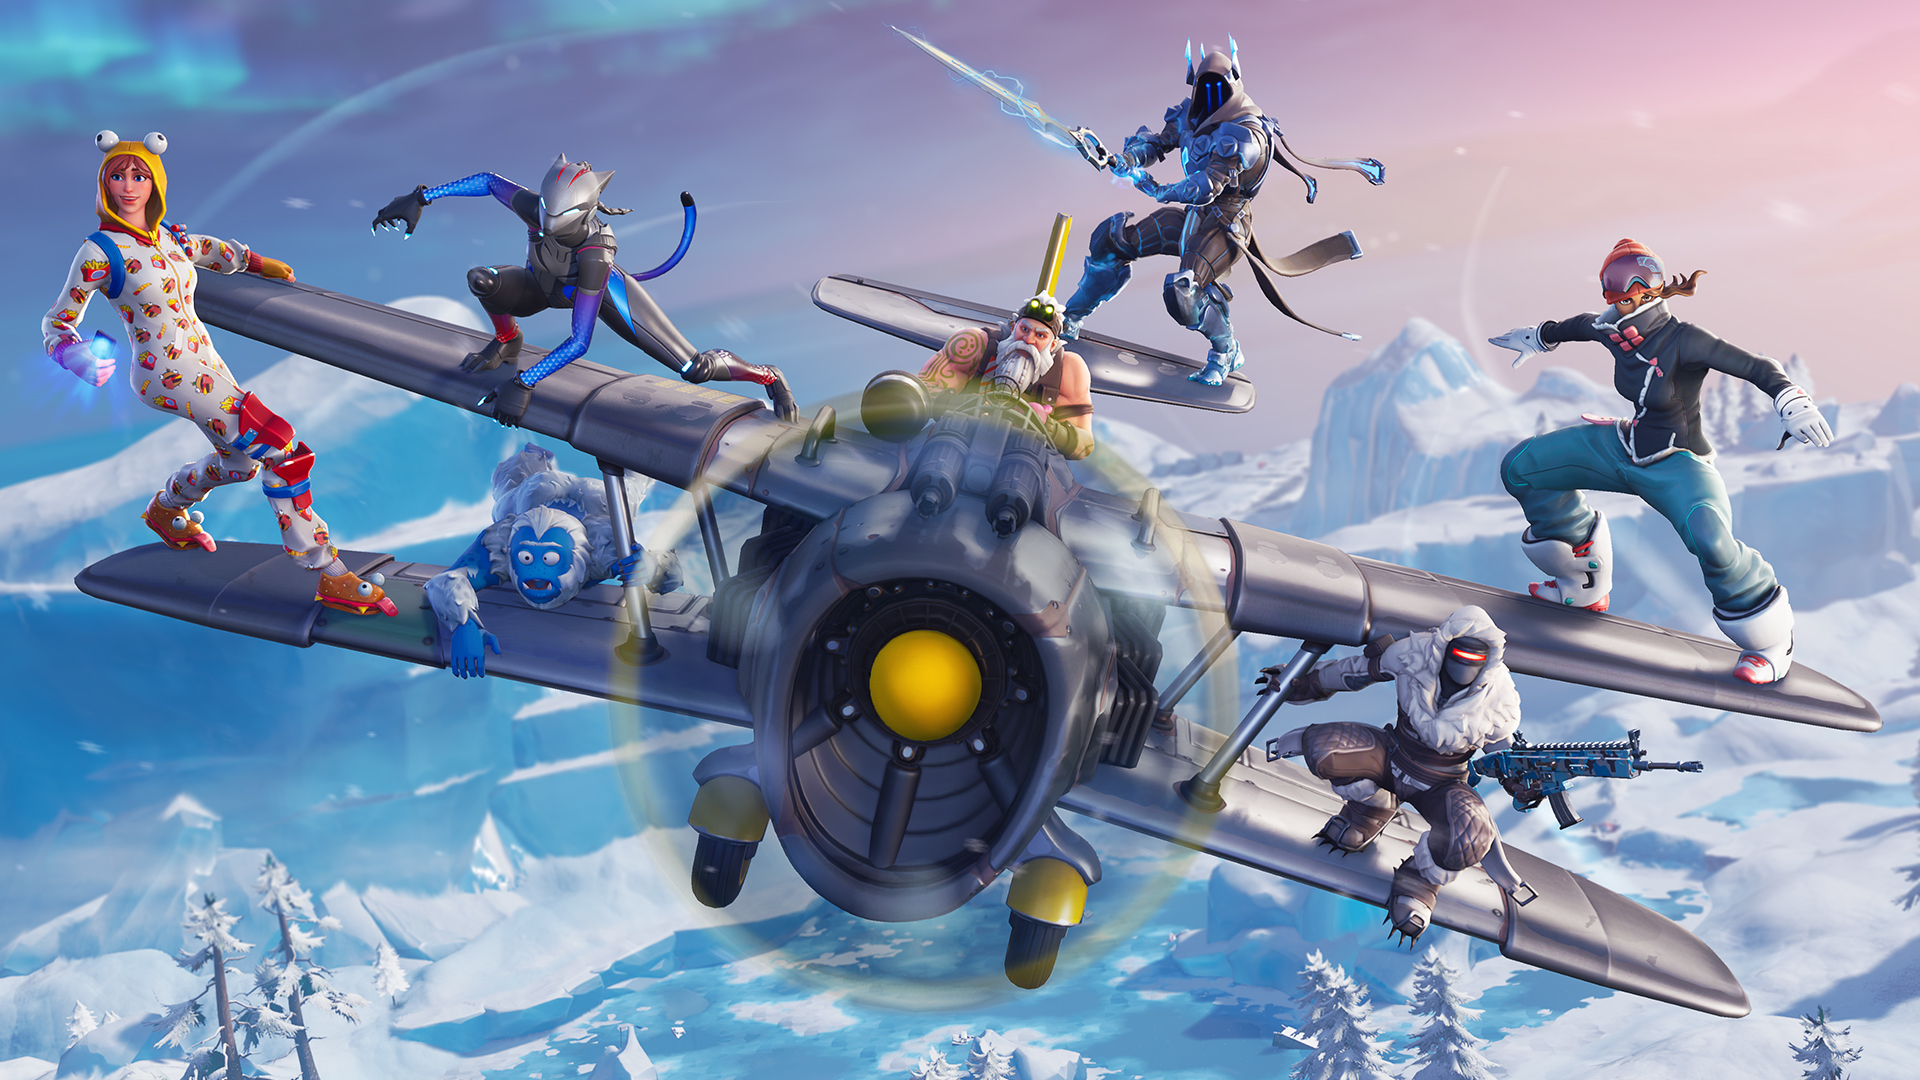 Epic Games delays the release of Fortnite's v7.10 update